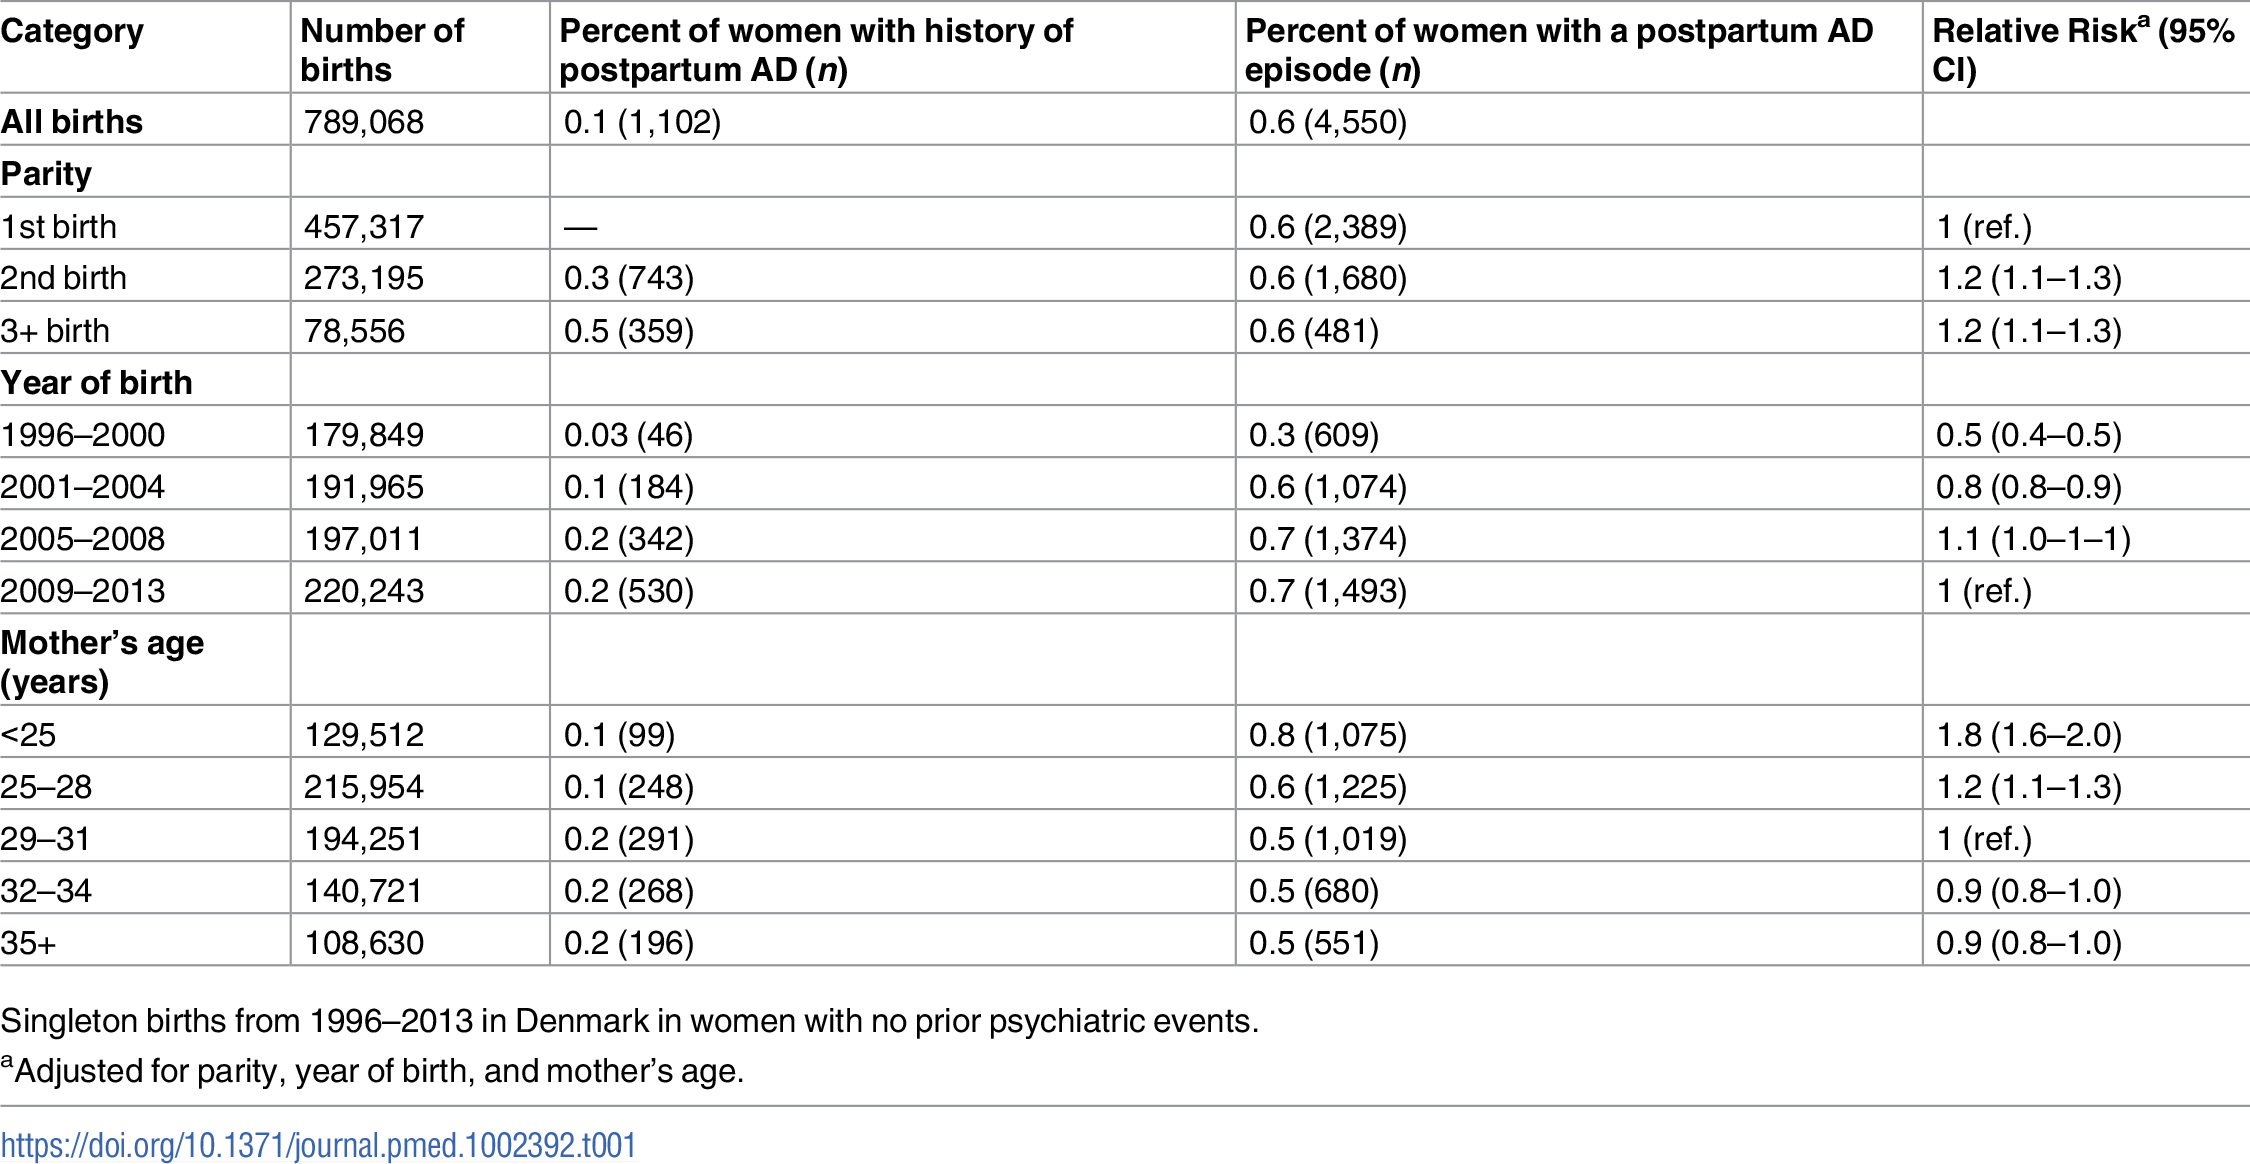 Risk of postpartum affective disorder (AD)—Distribution of number of births, women with prior history of postpartum AD, and postpartum AD episodes according to parity, year of birth, and age.